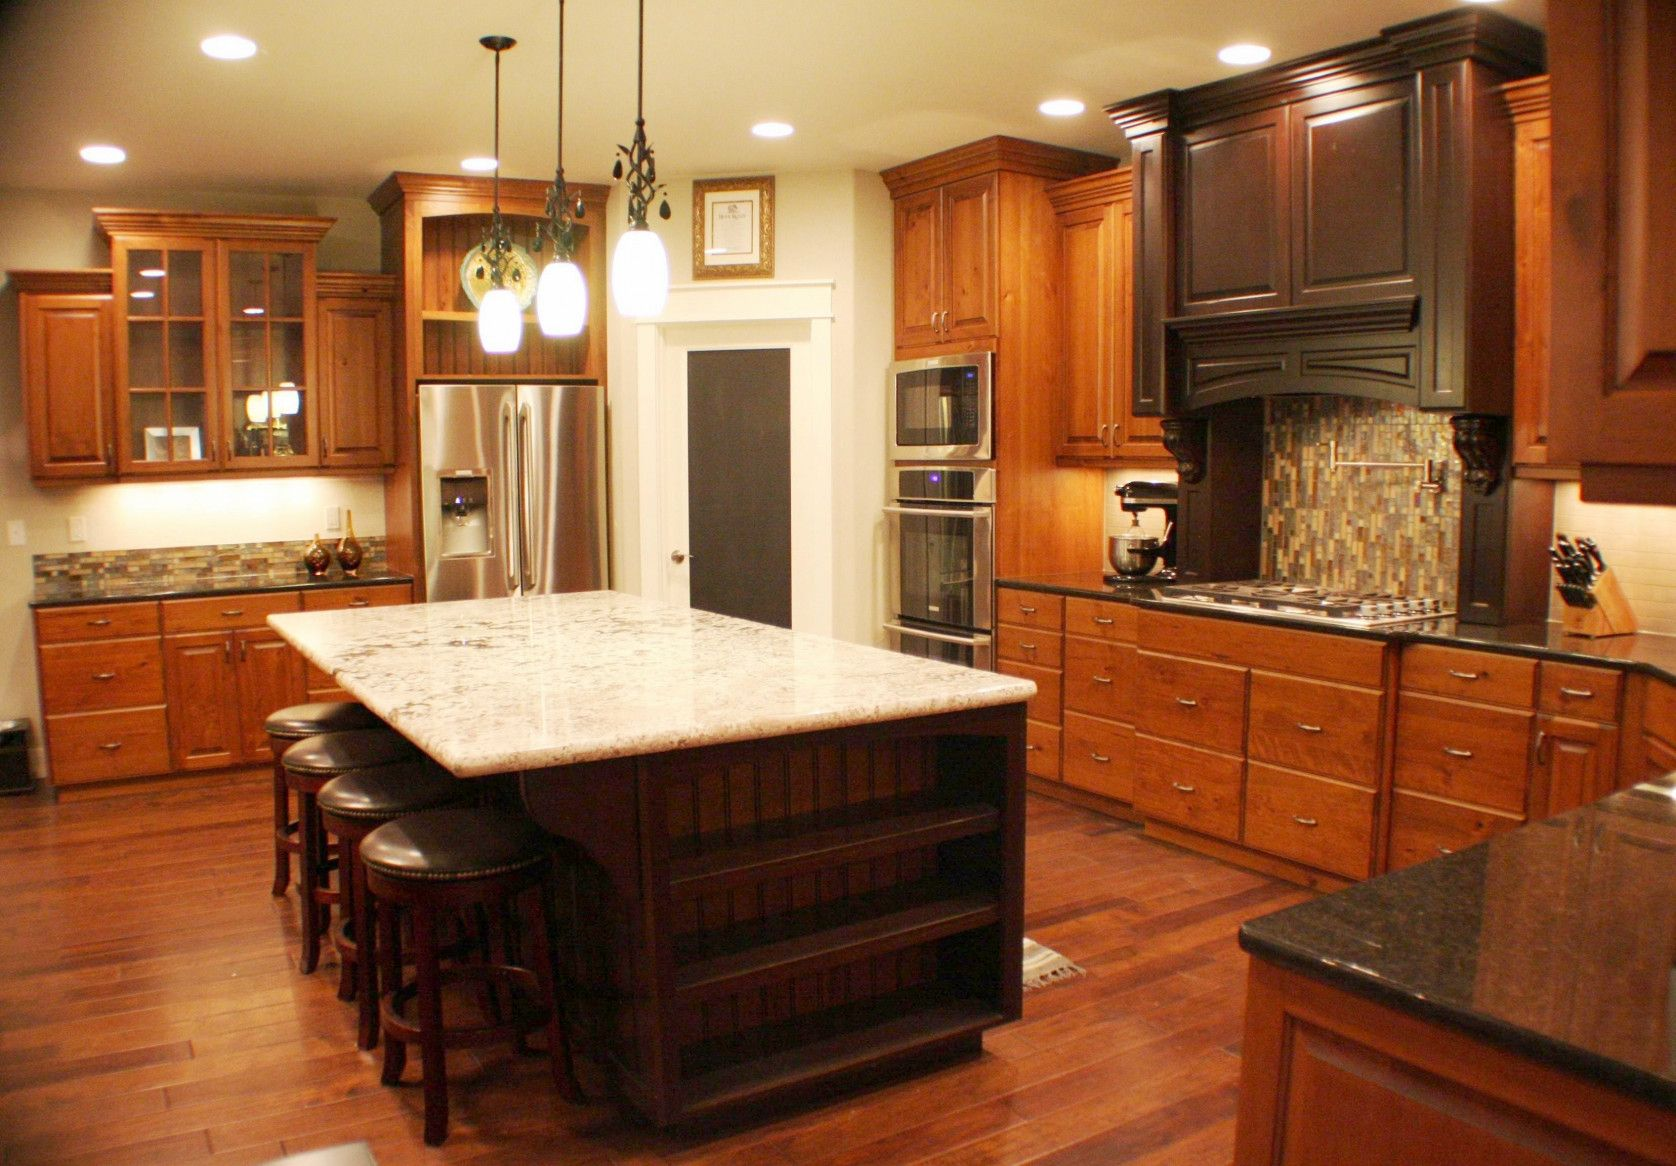 70 Kitchen Cabinets Springfield Mo Kitchen Island Countertop Ideas Check More A Shaker Style Kitchen Cabinets Kitchen Cabinet Styles Cherry Cabinets Kitchen